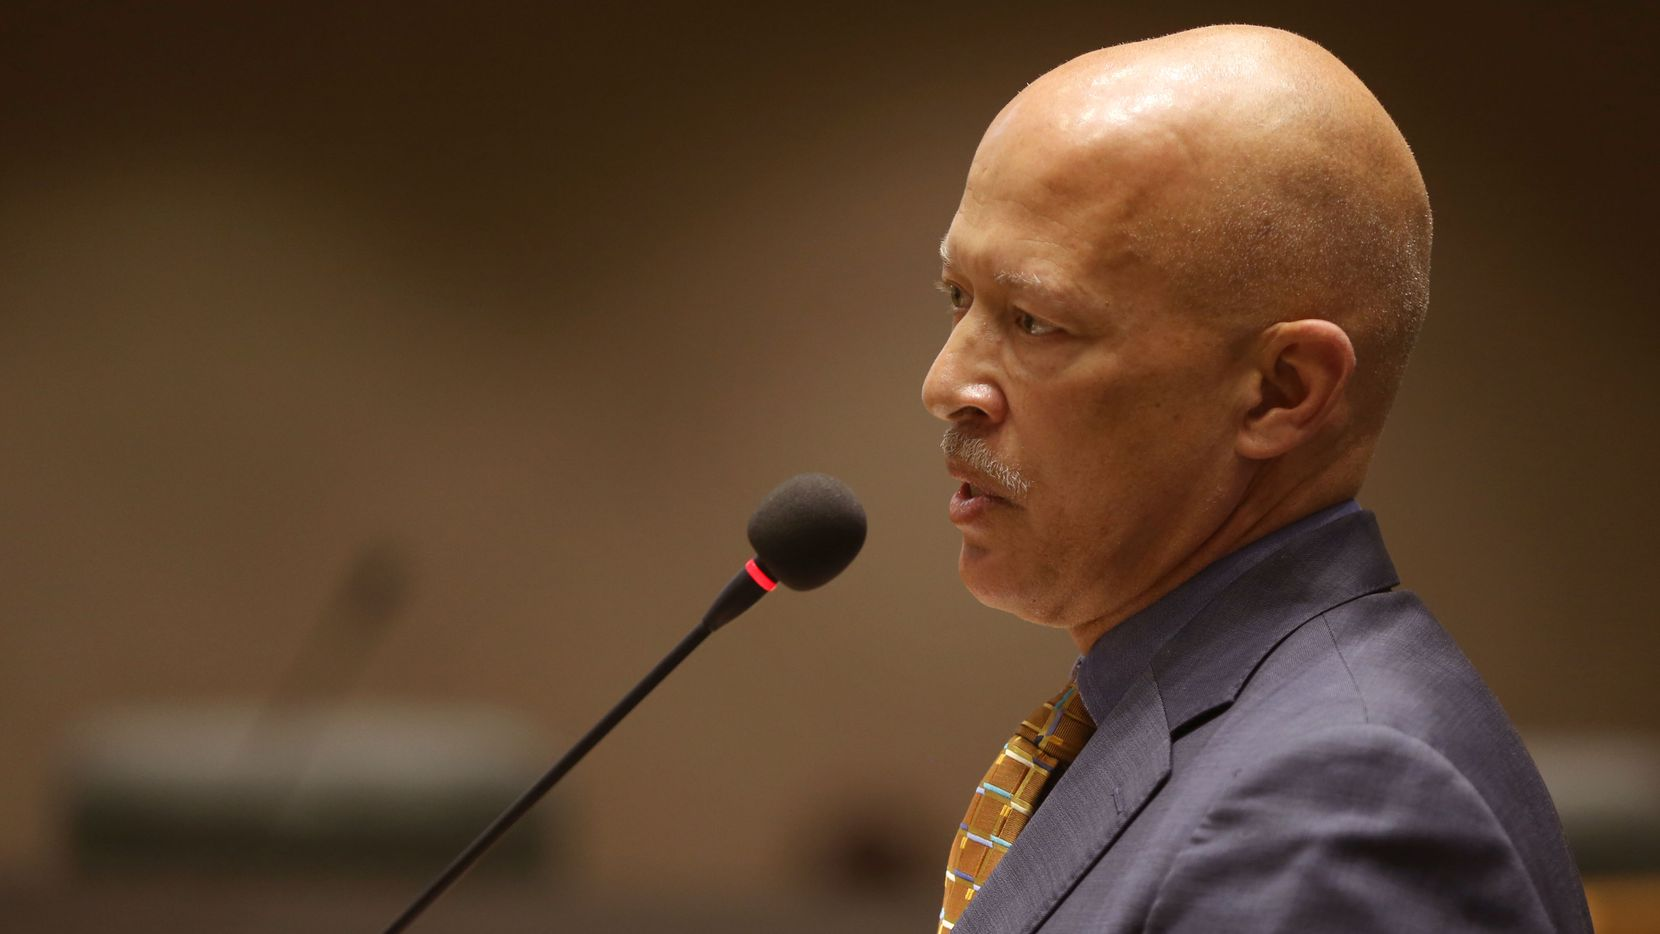 Dallas County District Attorney John Creuzot speaks to City Council members about his police reform policies during a public safety and criminal justice meeting at City Hall in Dallas on April 22, 2019.